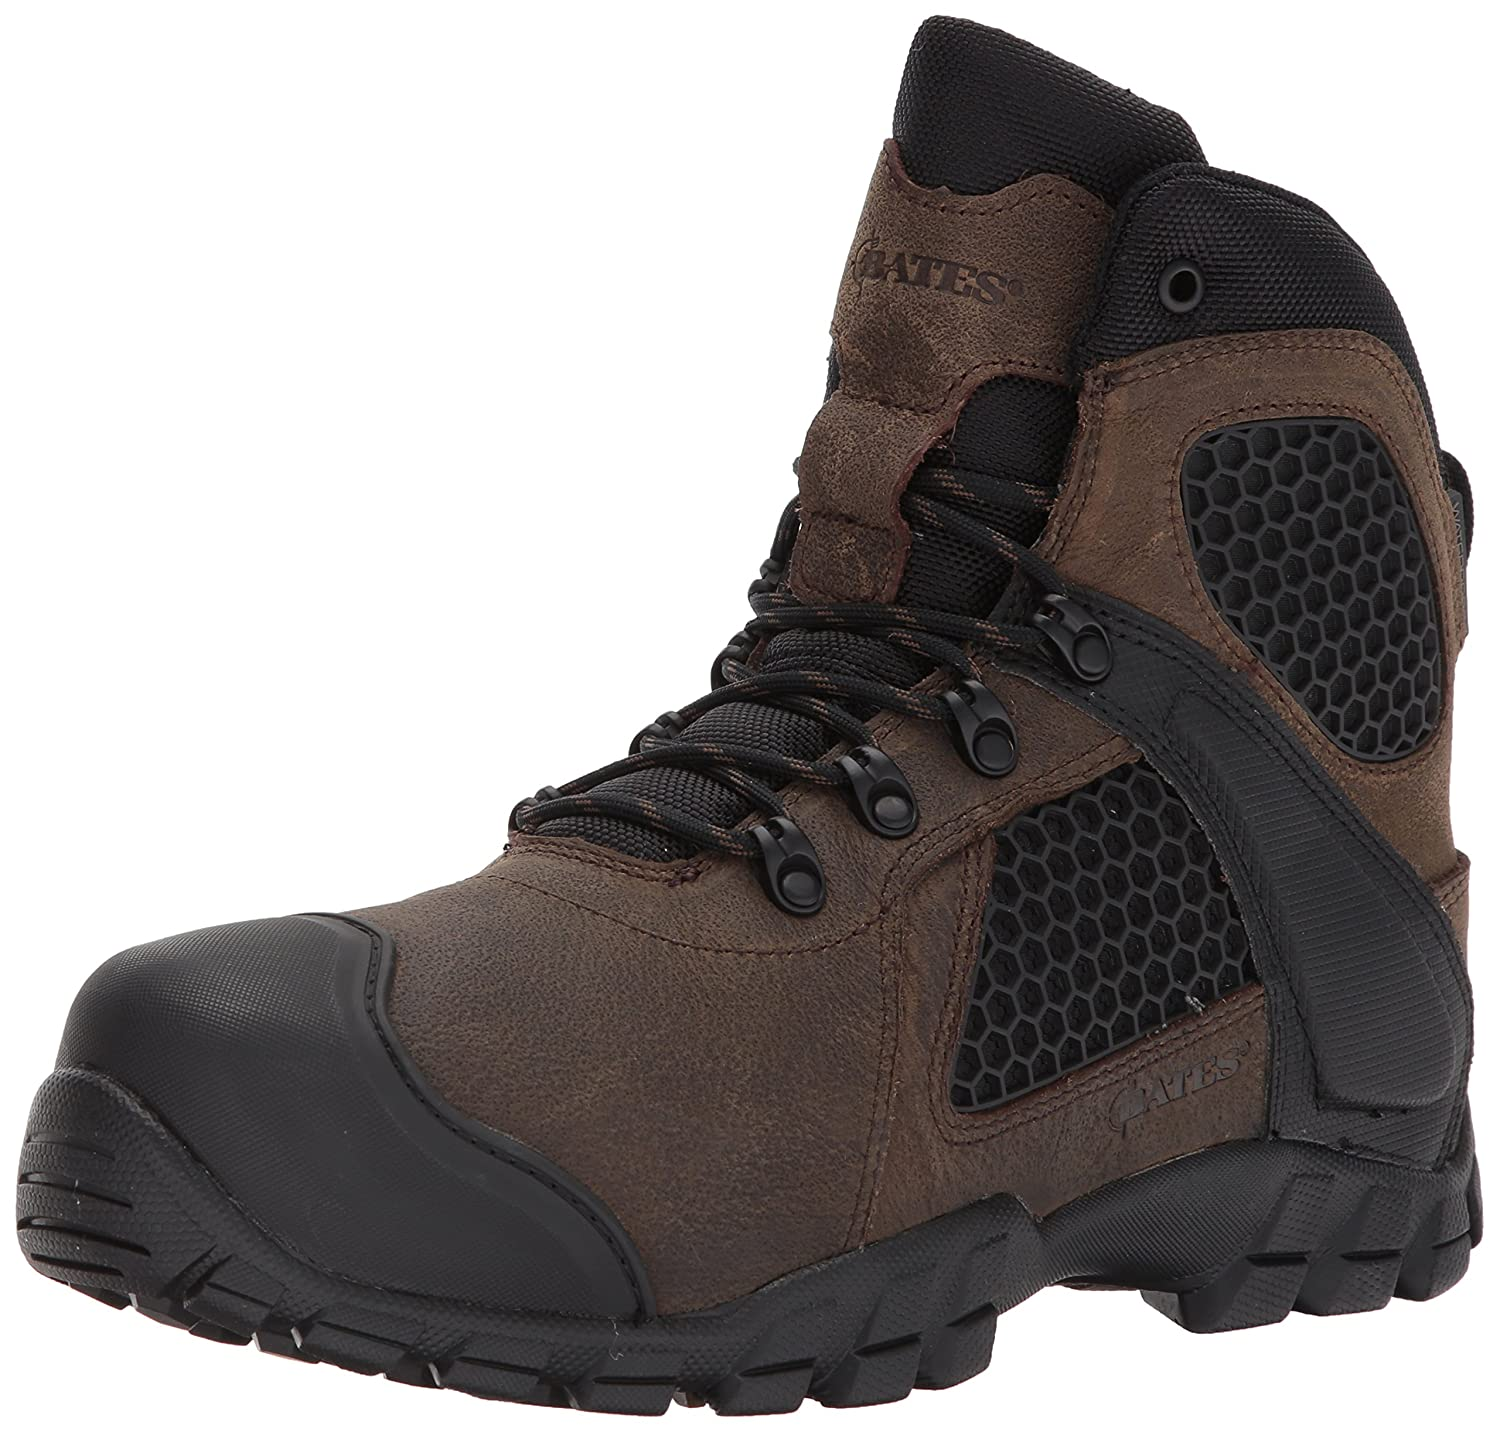 Bates Men's Shock Fx Military and Tactical Boot E07011-MEDIUM